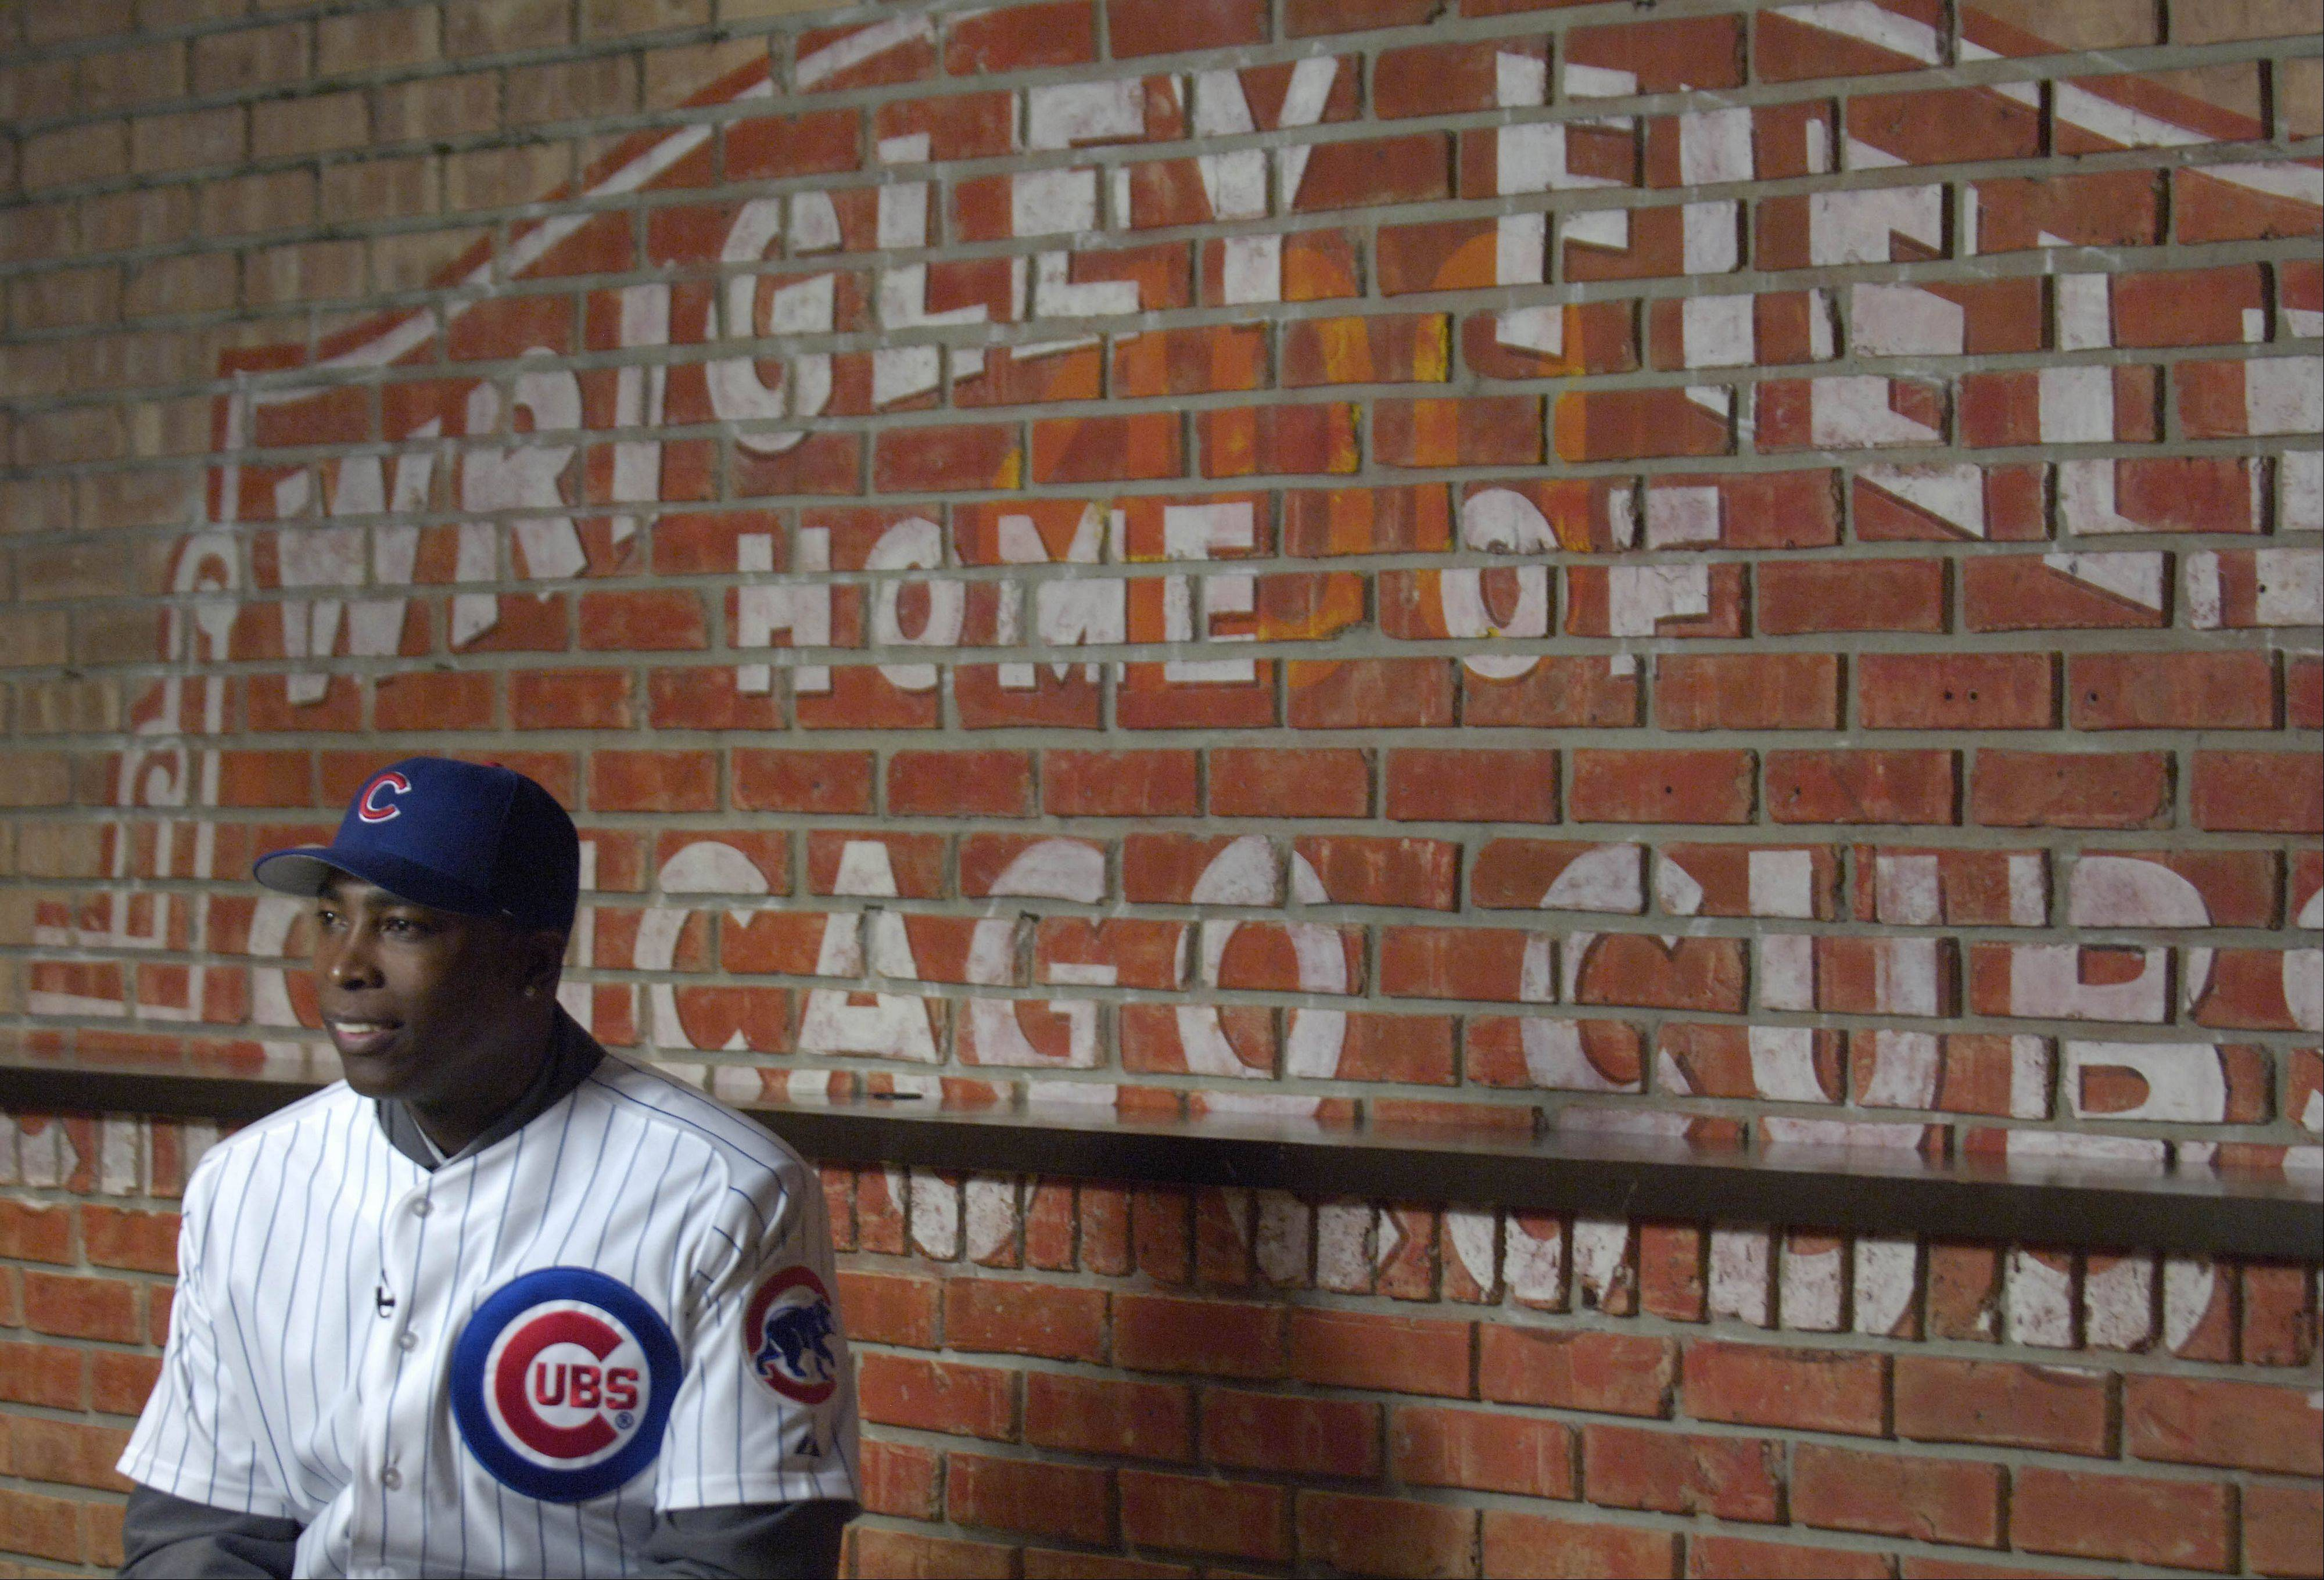 Big things were expected for the franchise after the Cubs signed Alfonso Soriano when the team was owned by the Tribune Co.